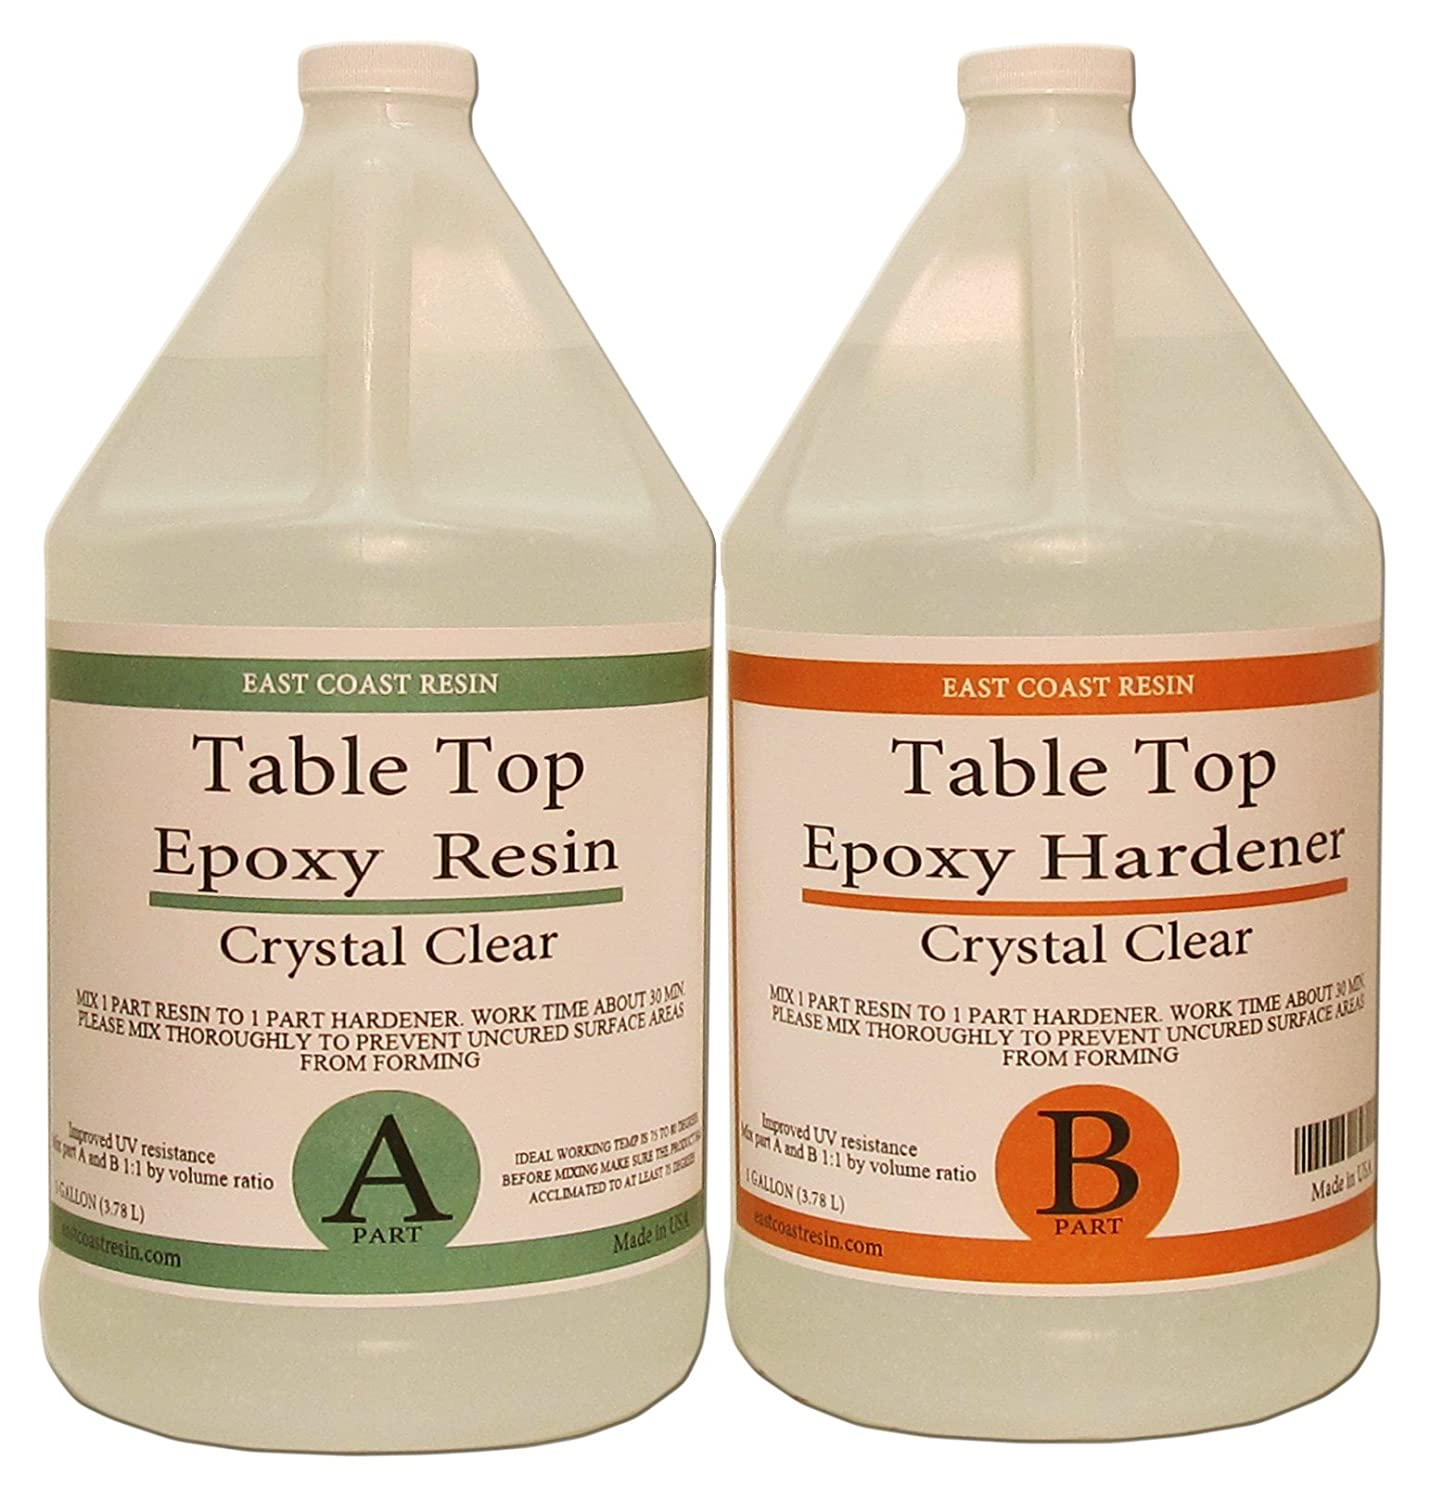 TABLE TOP EPOXY RESIN CRYSTAL CLEAR 2 Gallon Kit. FOR SUPER GLOSS COATING East Coast Resin CECOMINOD076490